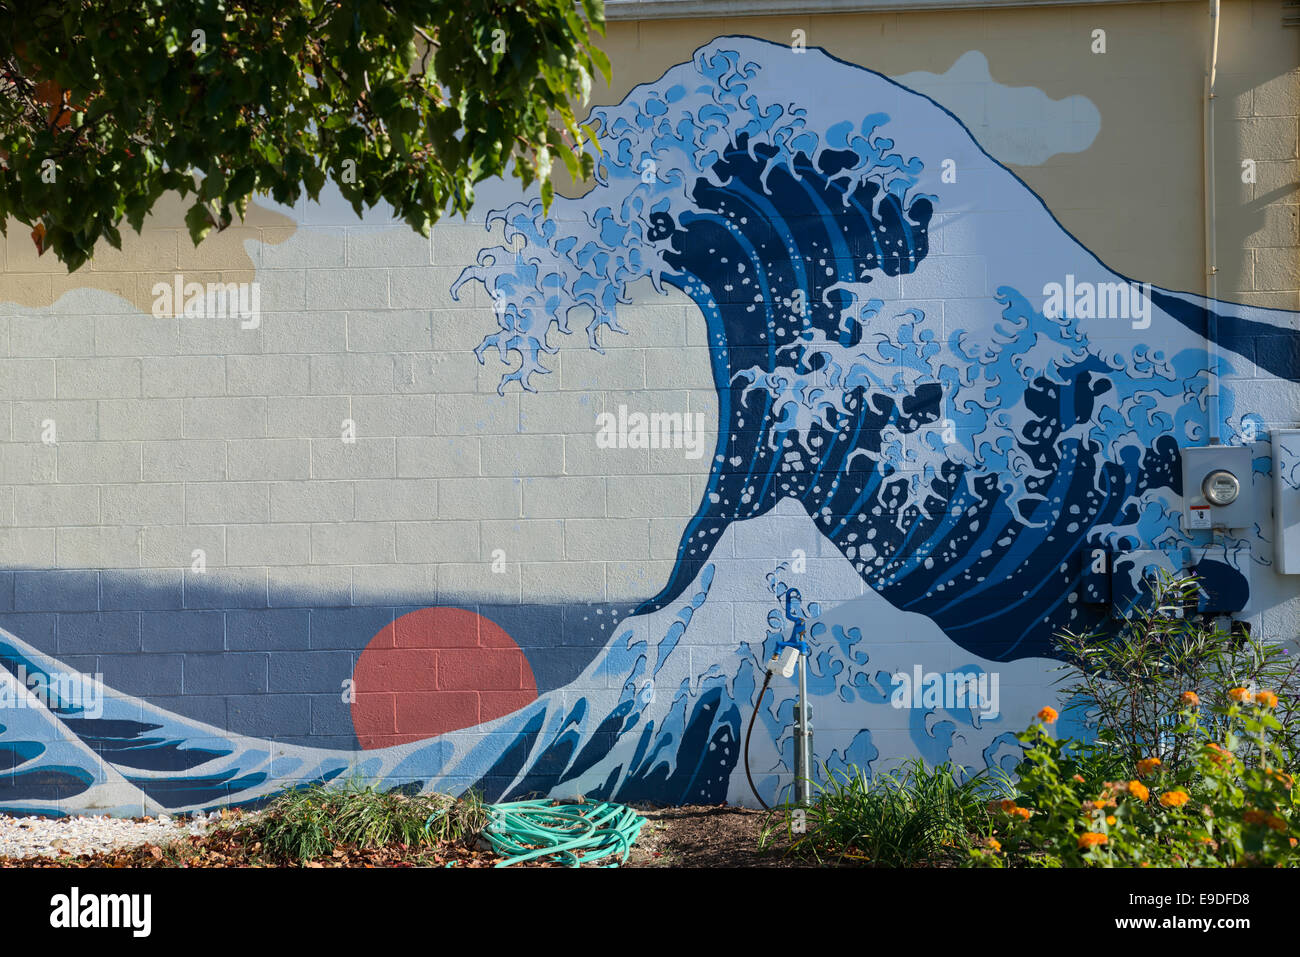 Wall mural in style of Hokusai - Stock Image